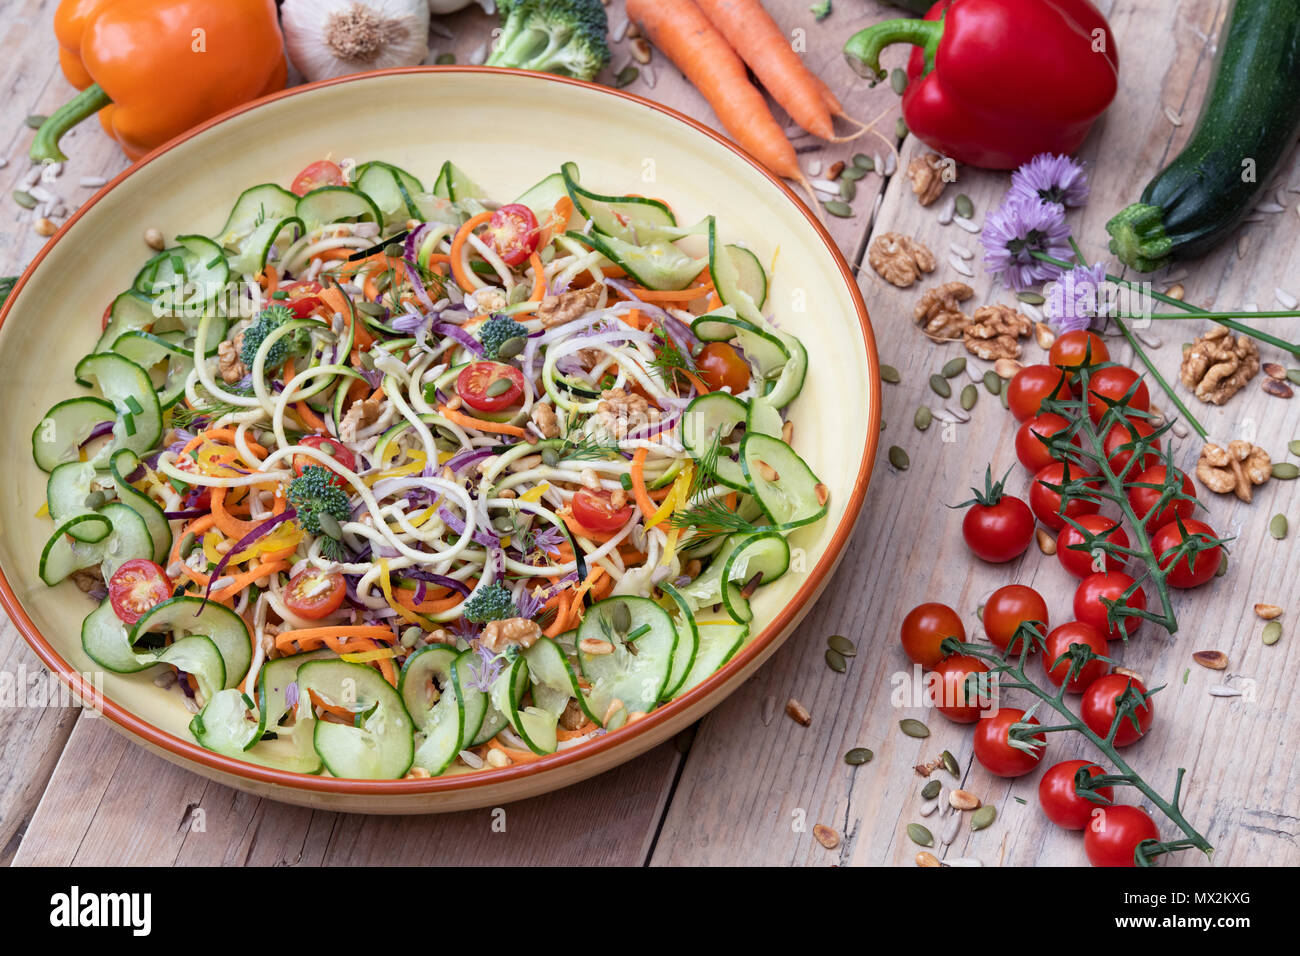 Spiralized Vegetable Salad in a bowl surrounded by vegetables on wood Stock Photo